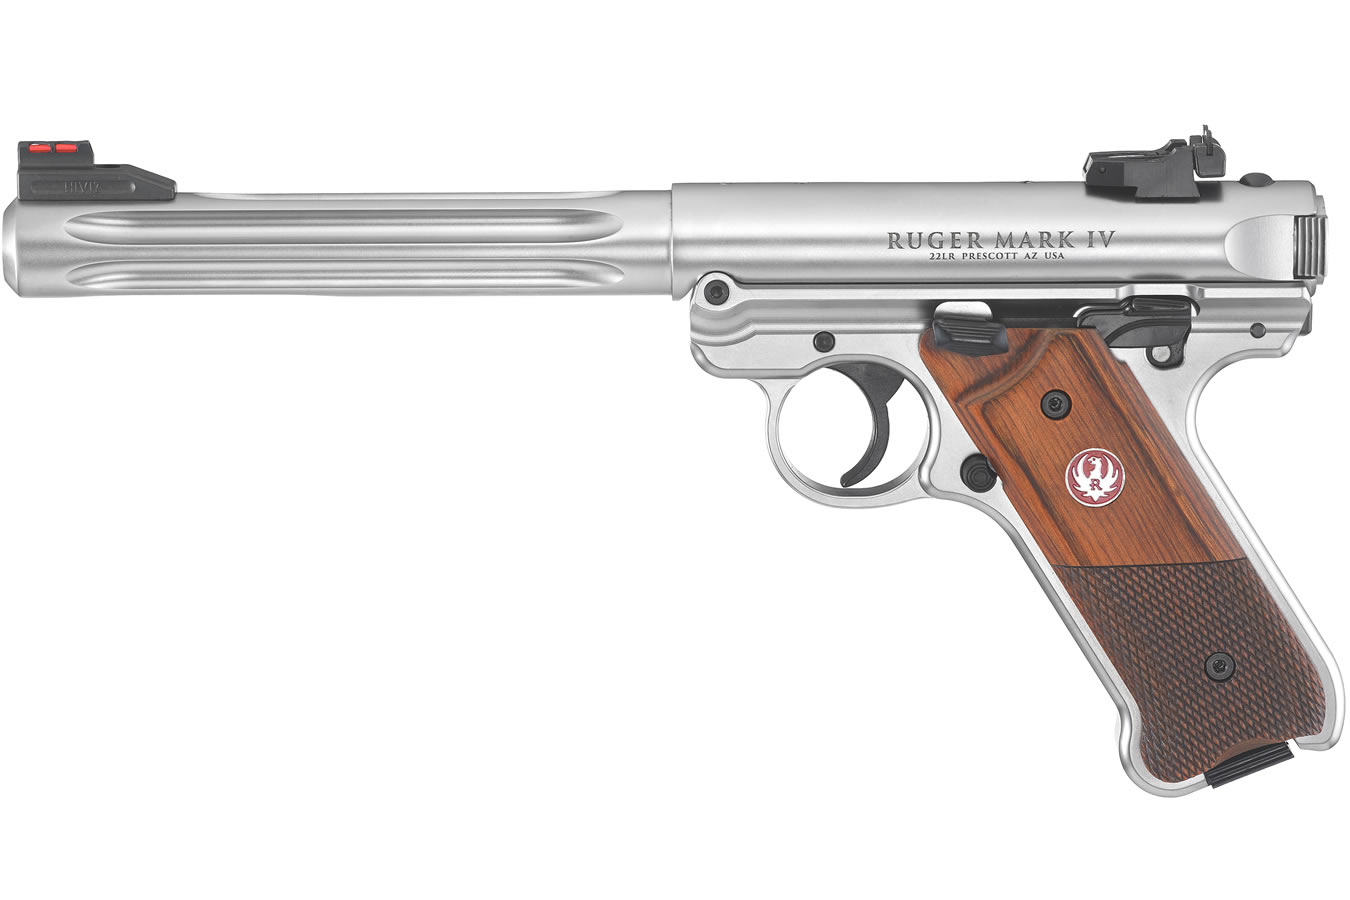 Mark Iv Hunter 22lr Rimfire Pistol